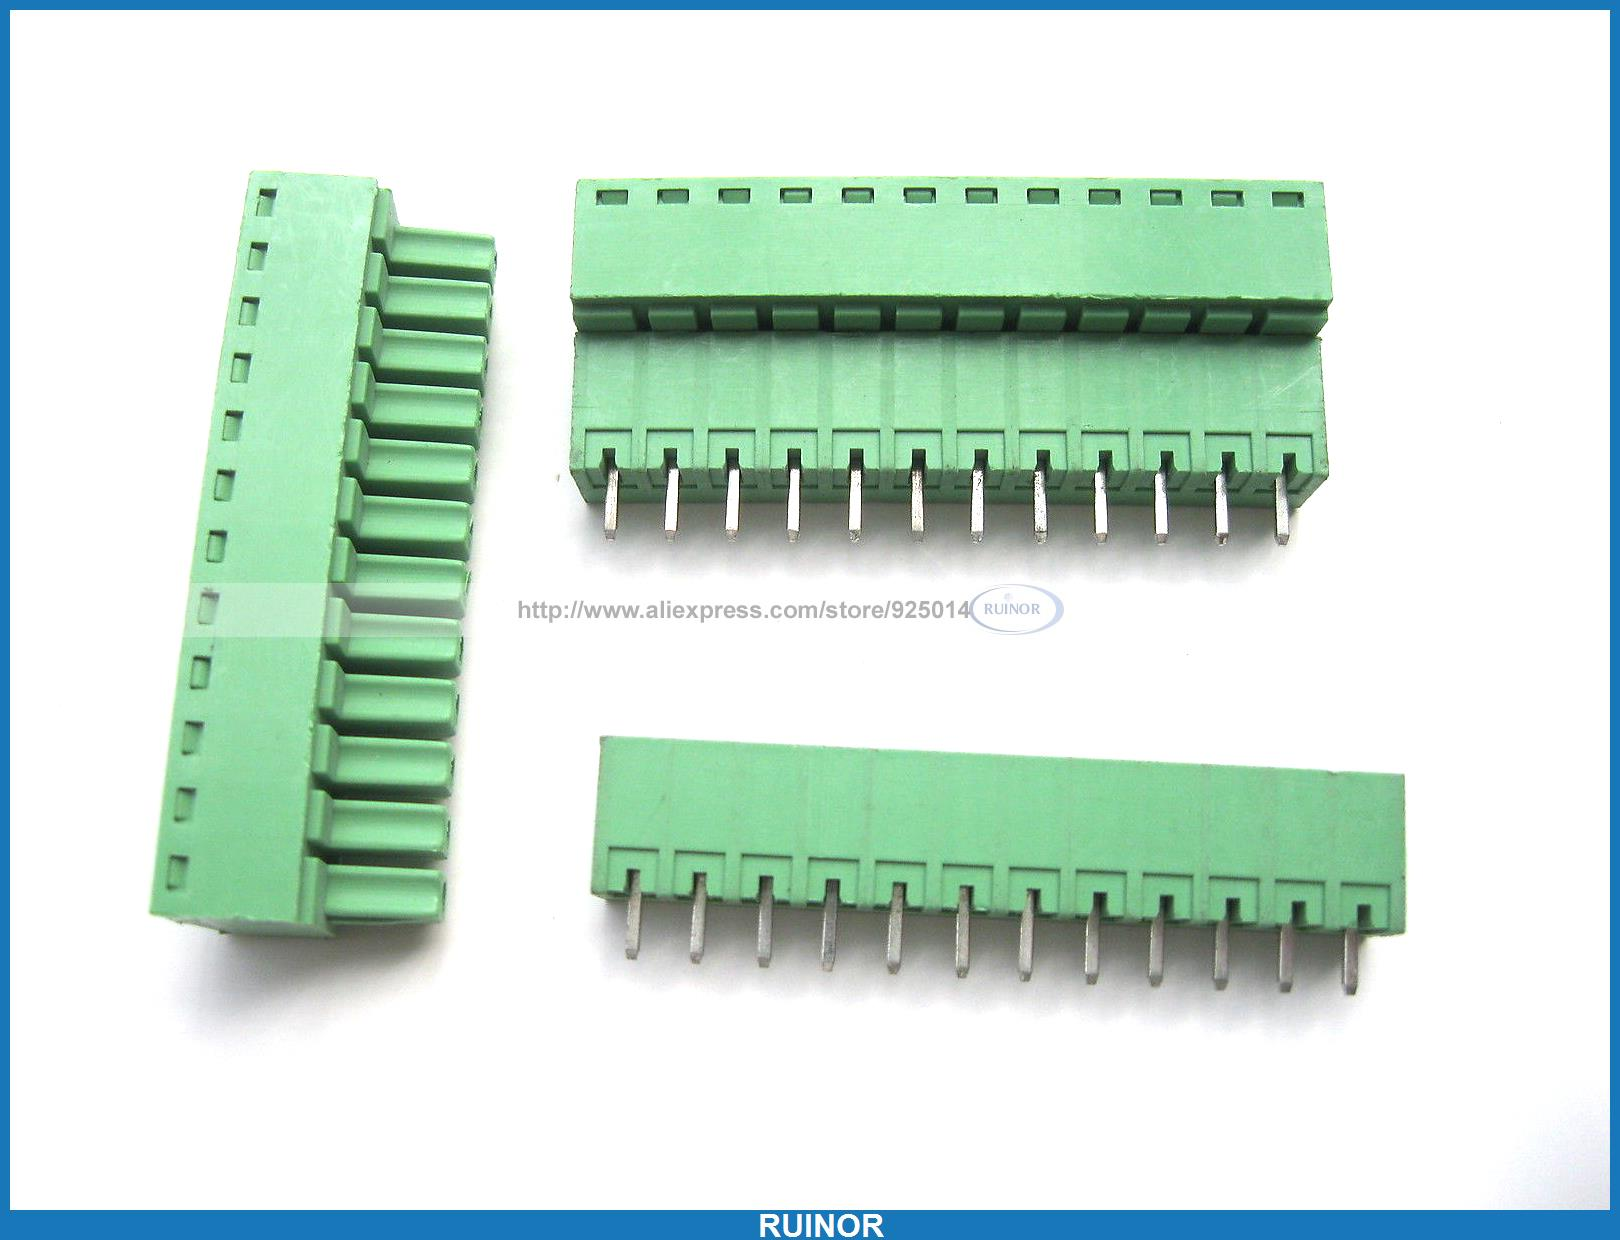 12 Pcs Screw Terminal Block Connector 3.5mm 12 Pin Green Pluggable Type <br><br>Aliexpress